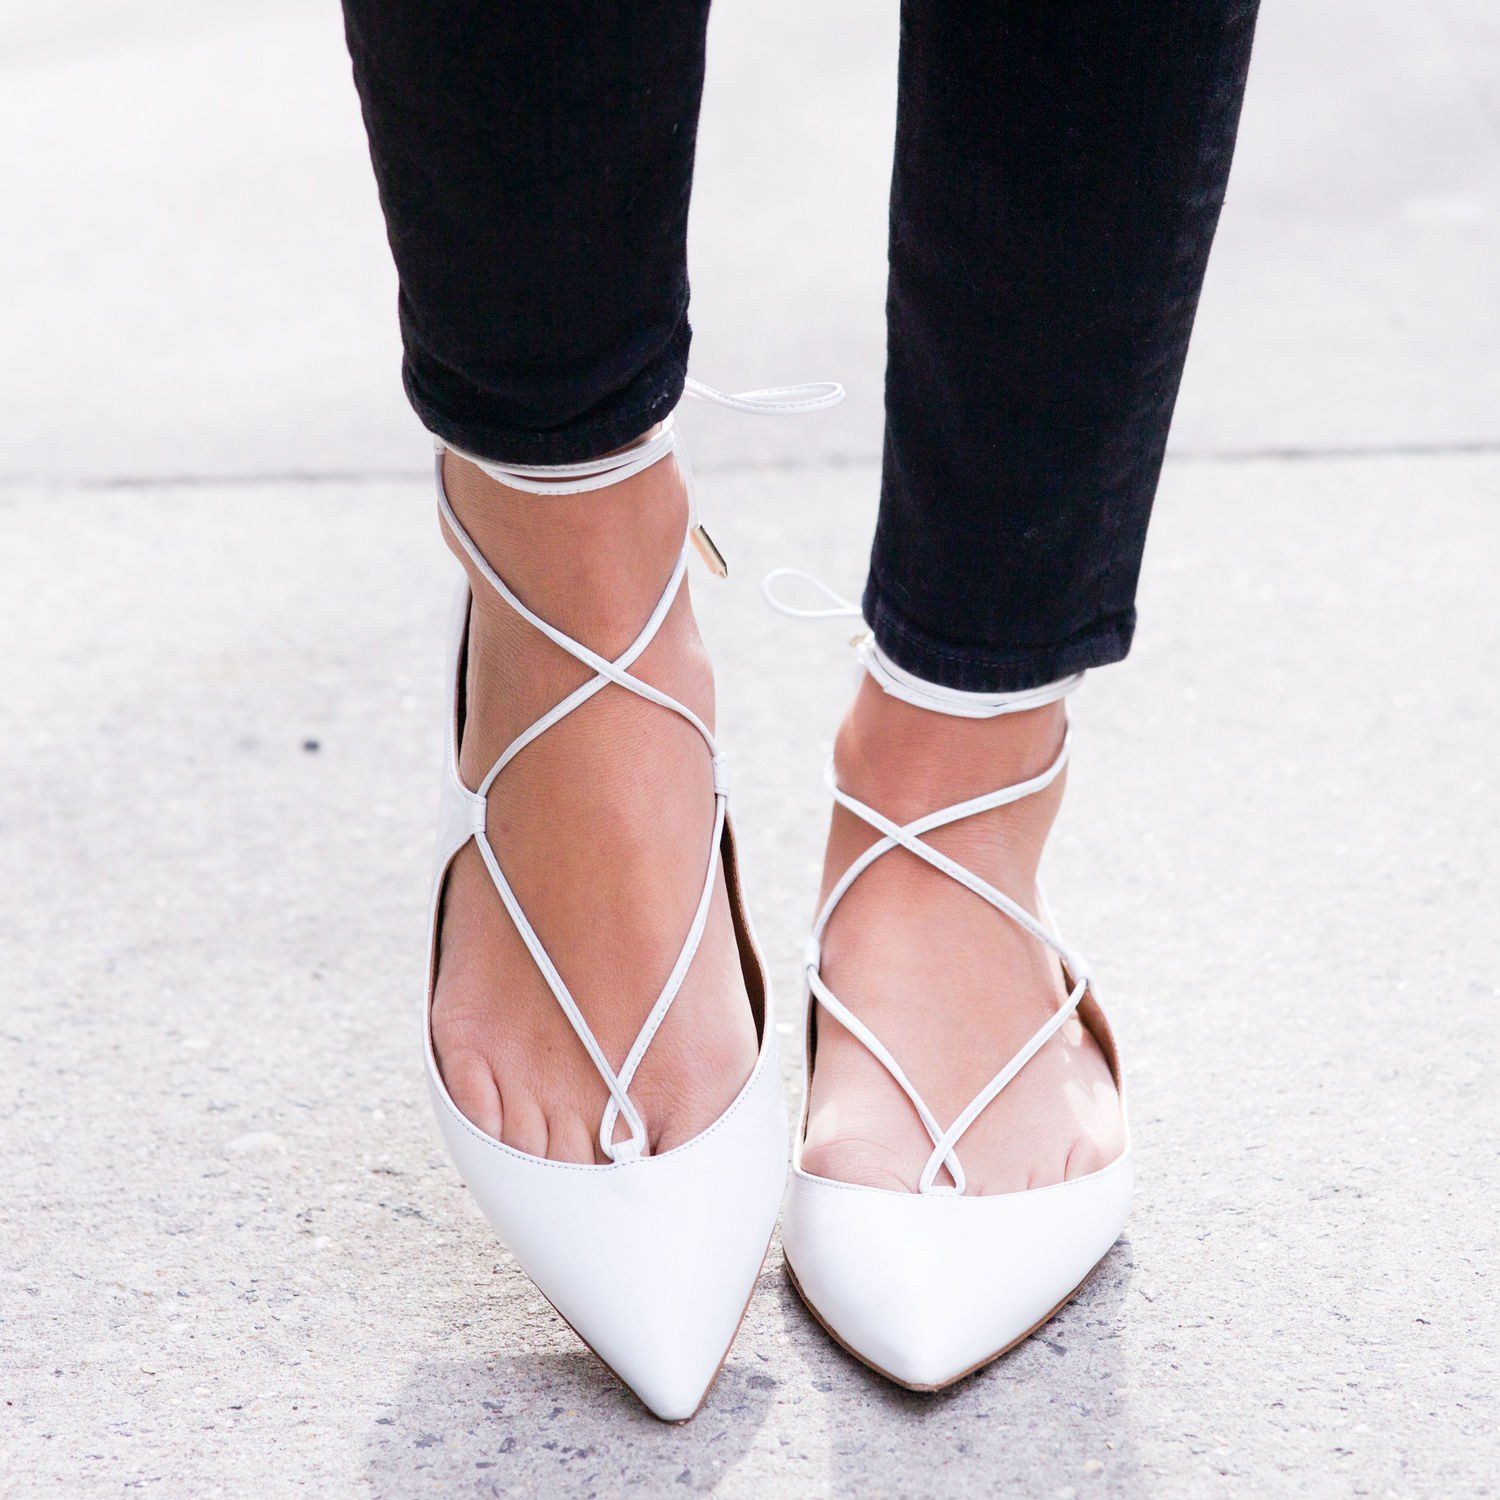 fall 2015 shoe trend: pointed-toe flats that will totally transform any  fall outfit | MNVOHBP